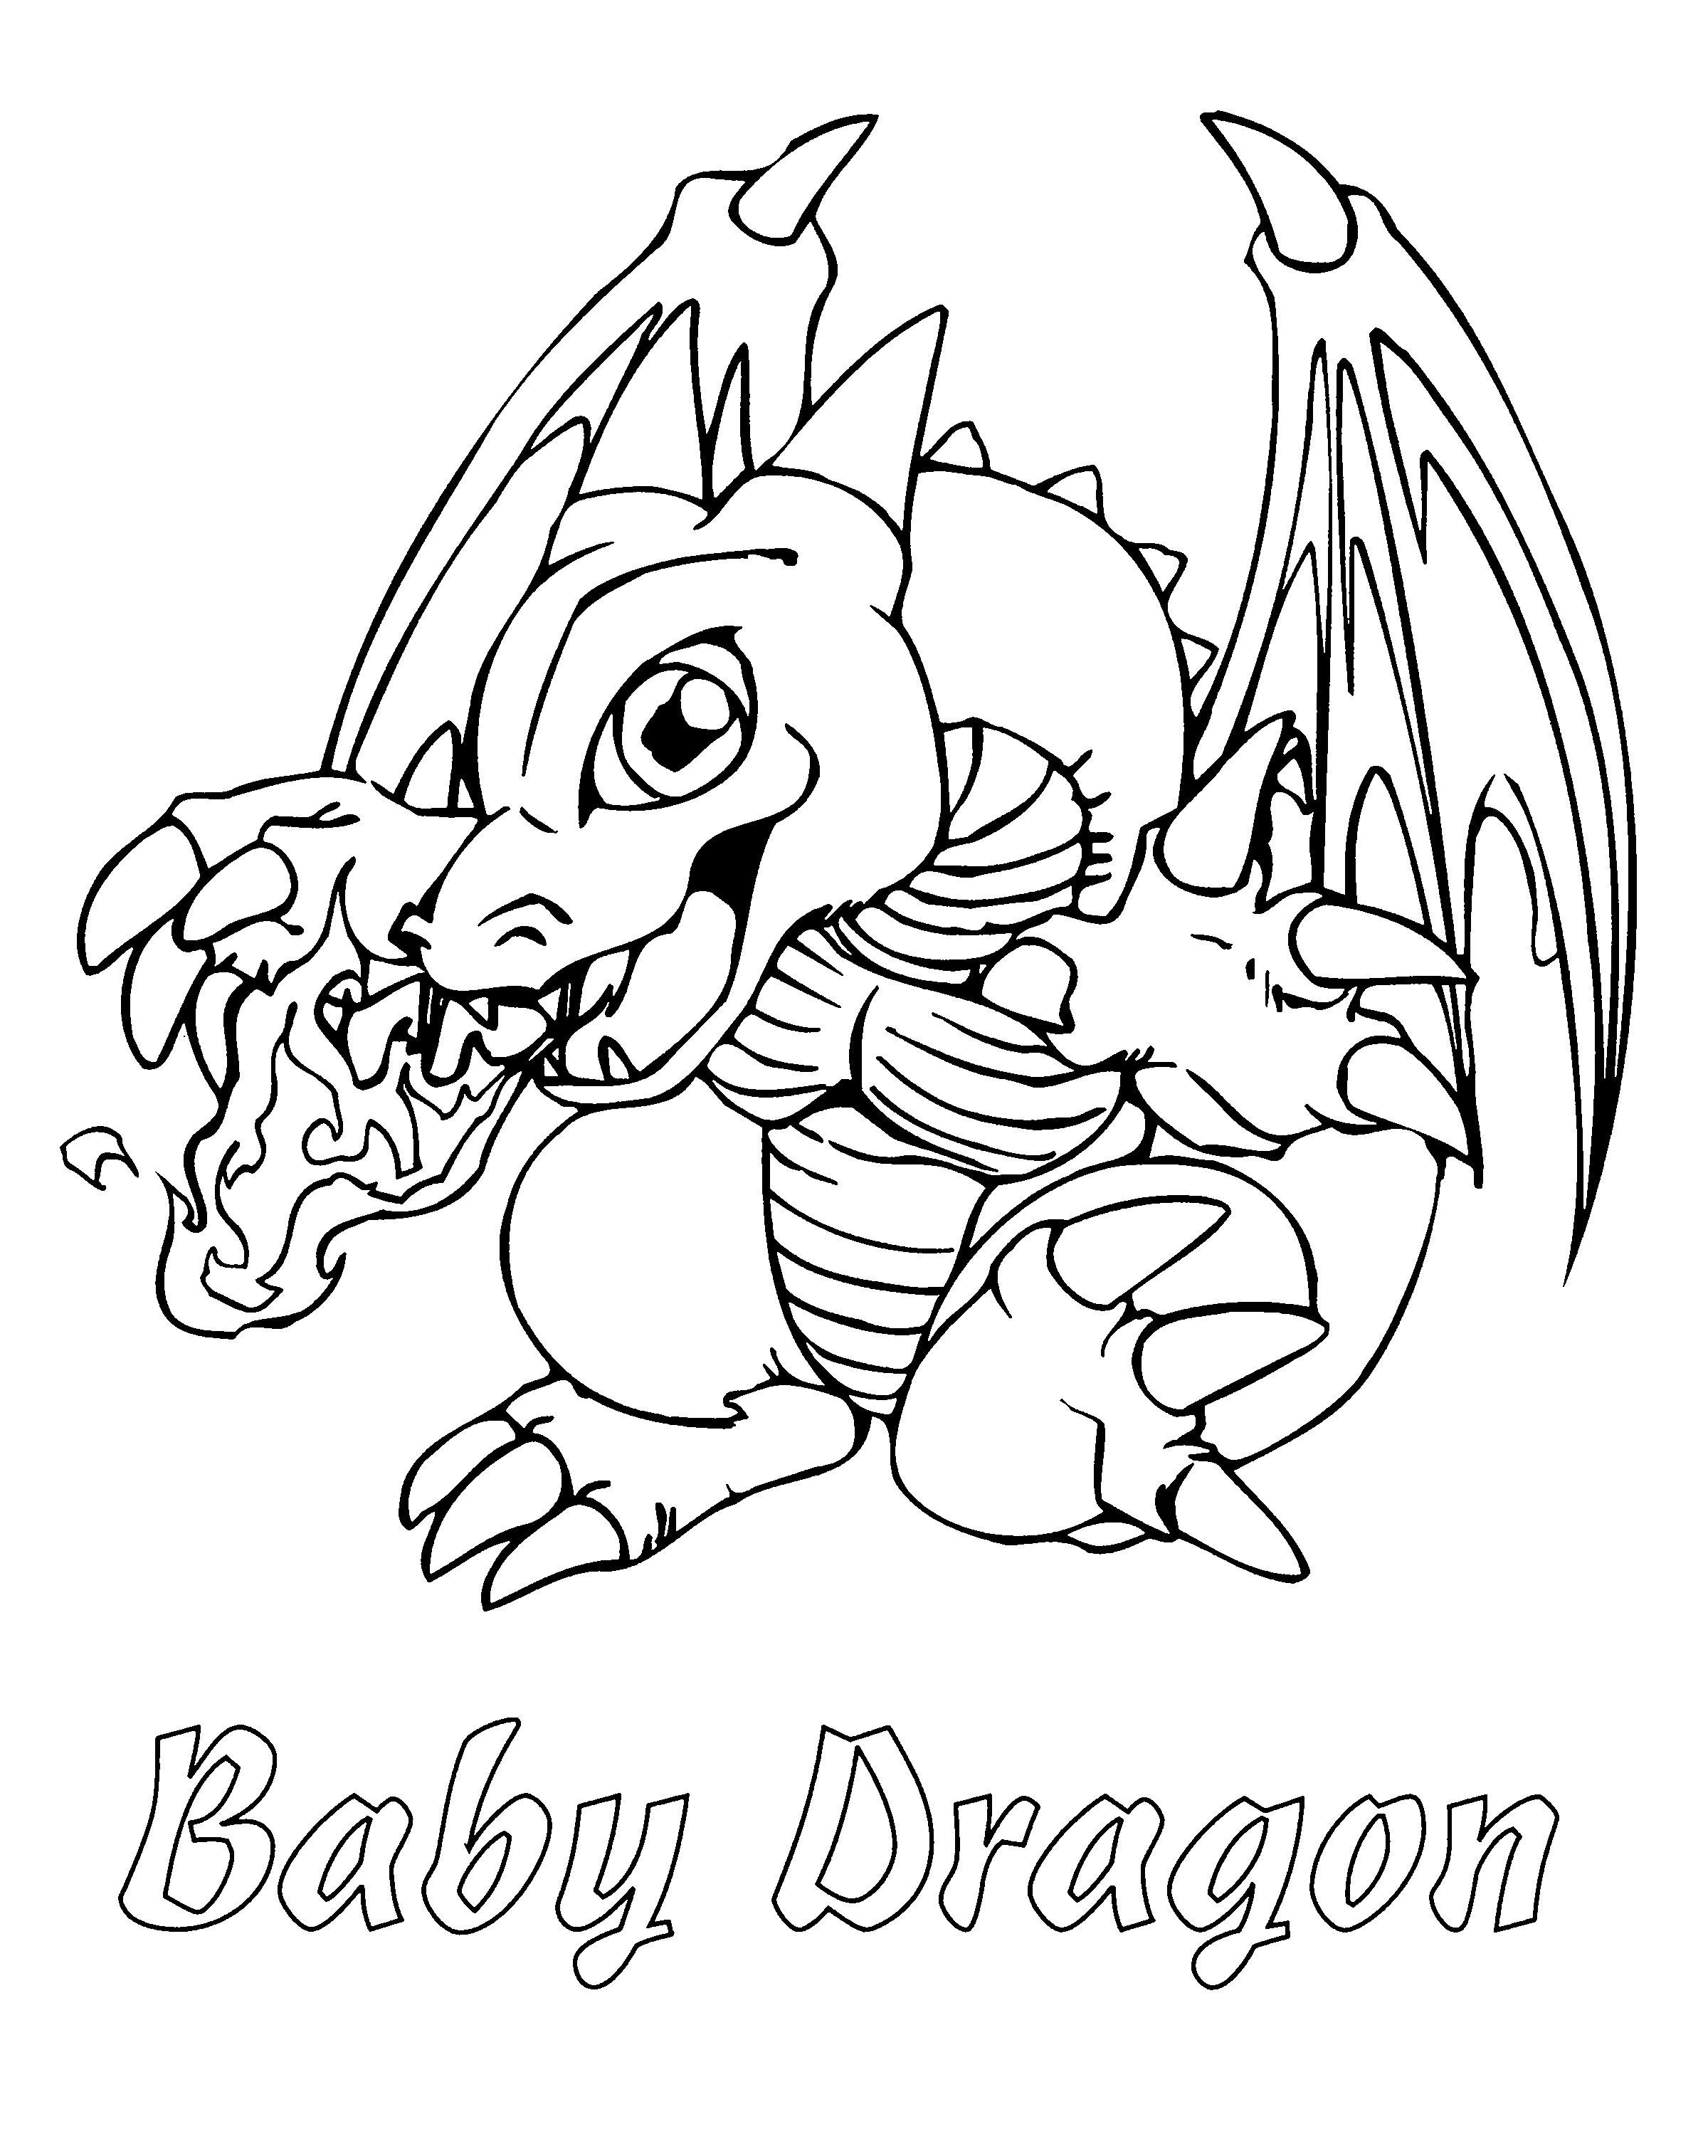 Baby Dragon Coloring Pages From The Thousand Photographs On The Web Concerning Baby Dragon Coloring Pages We Picks The Very Best Series Us Kleurplaten Drake